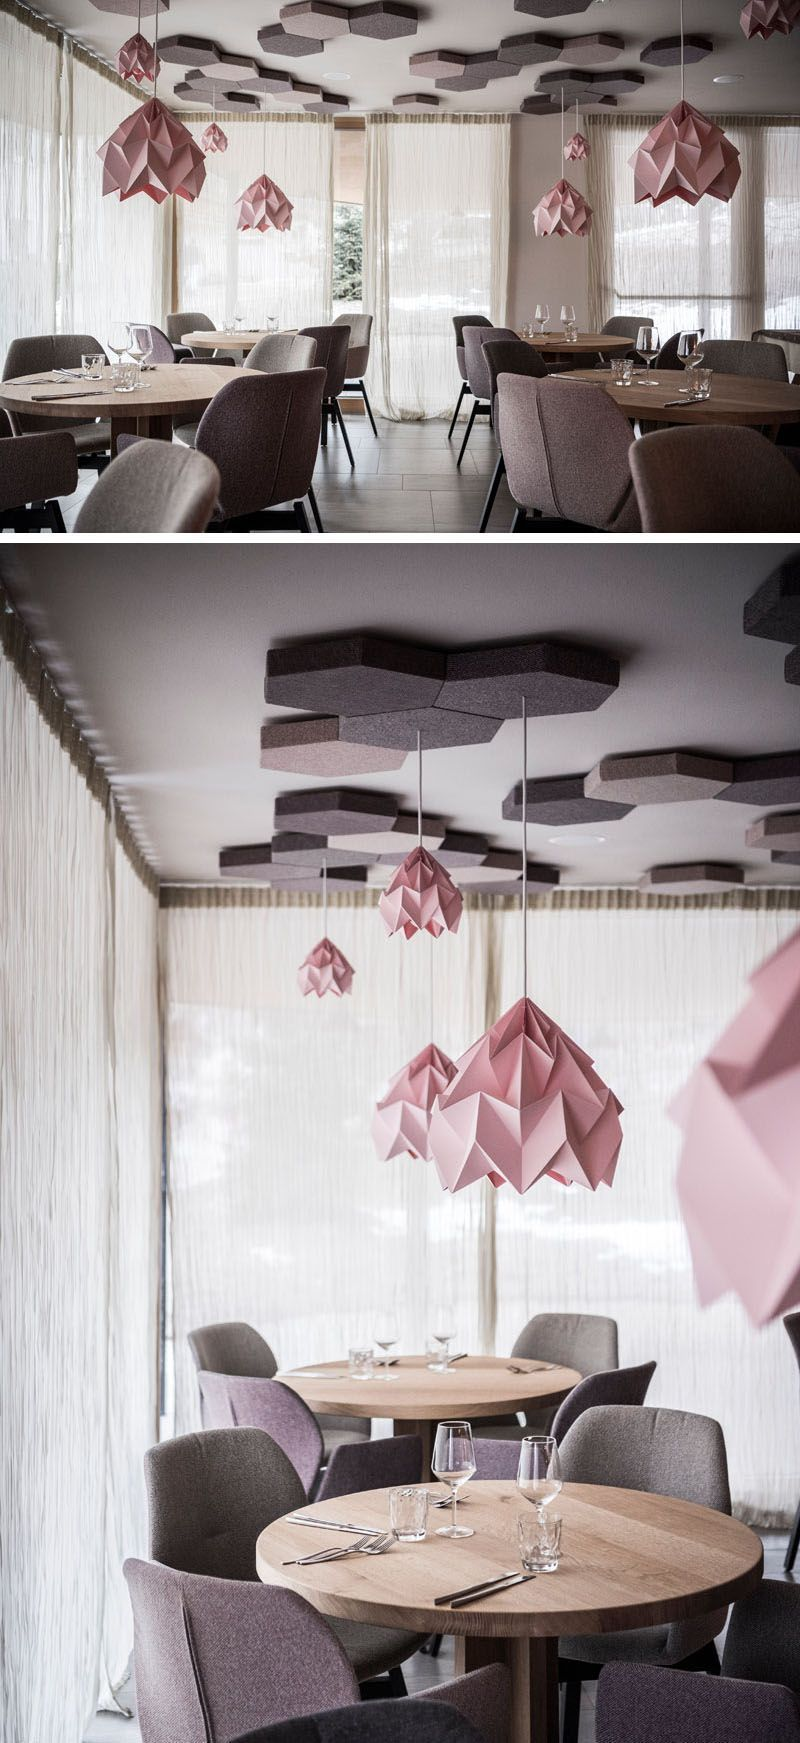 The contemporary pink light fixtures hanging from honeycomb the contemporary pink light fixtures hanging from honeycomb details are the focal point in this modern hotel restaurant round wood tables with dusty pink arubaitofo Images